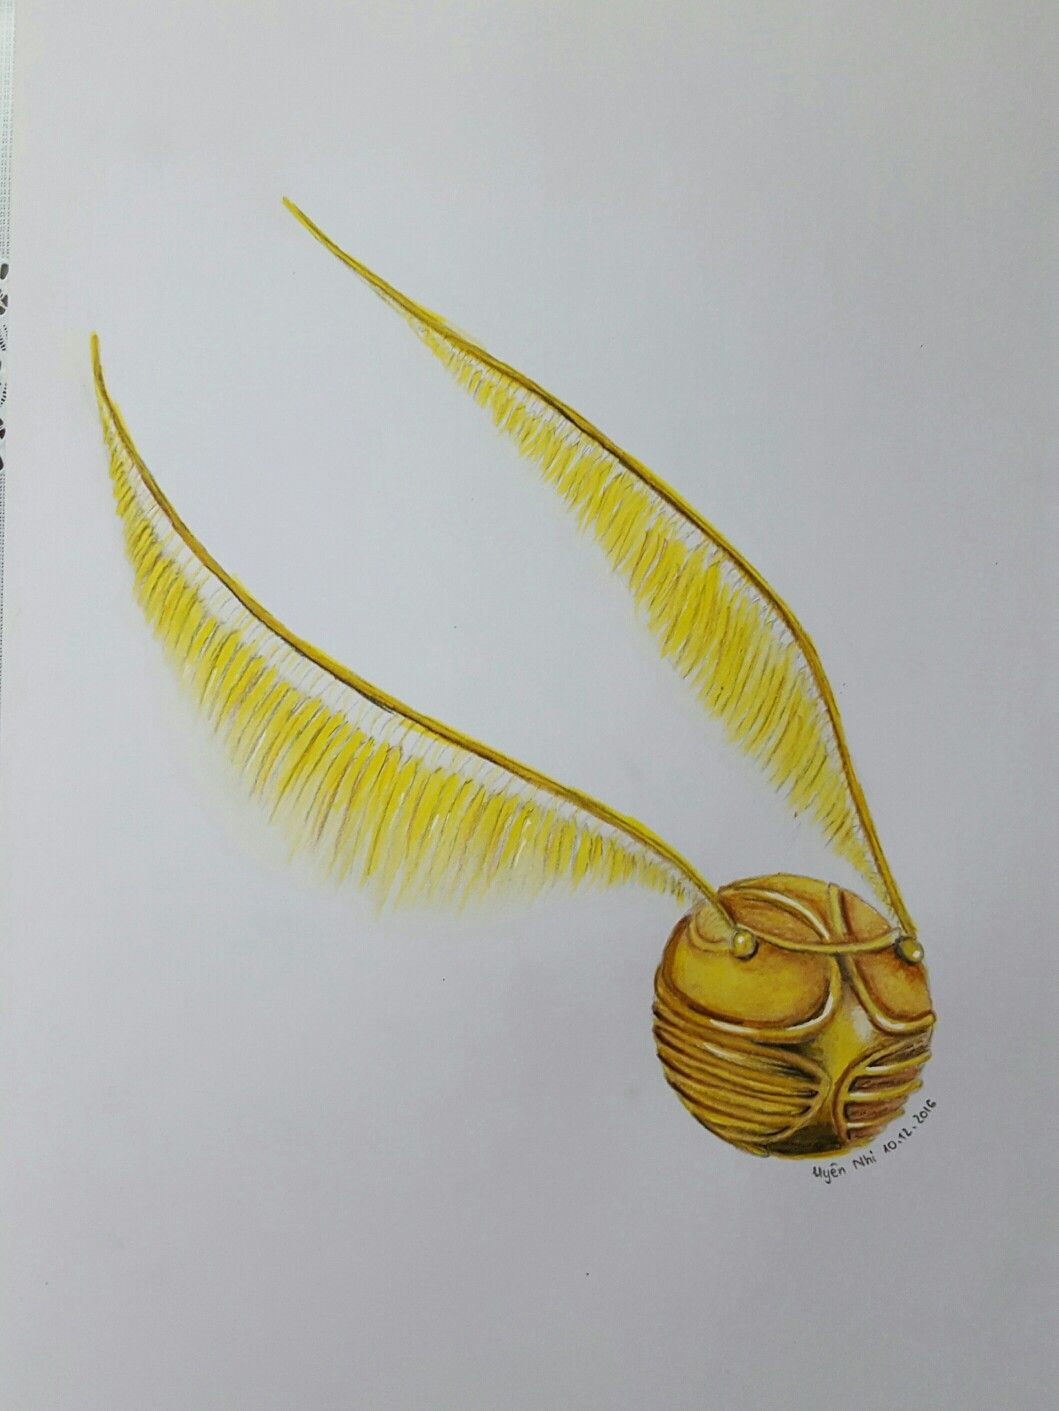 Harry Potter Snitch Drawing : harry, potter, snitch, drawing, Drawing, Golden, Snitch, Harry, Potter, Drawings,, Painting,